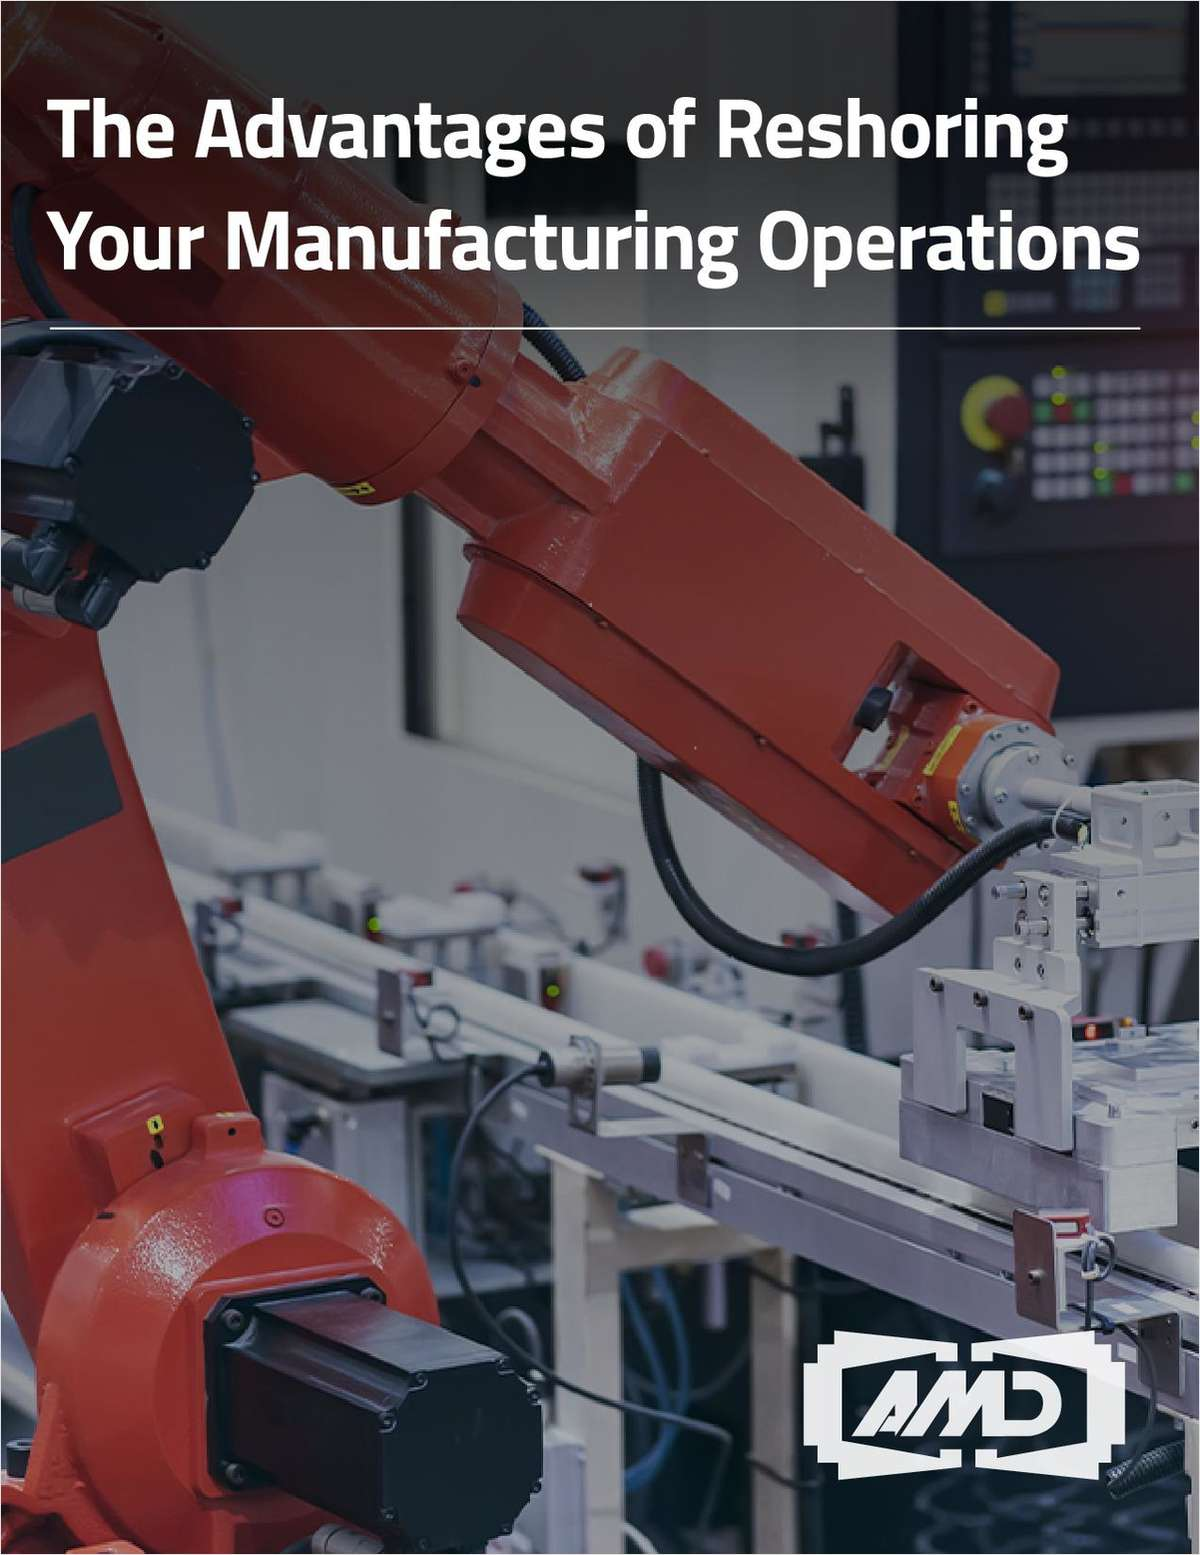 The Advantages of Reshoring Your Manufacturing Operation